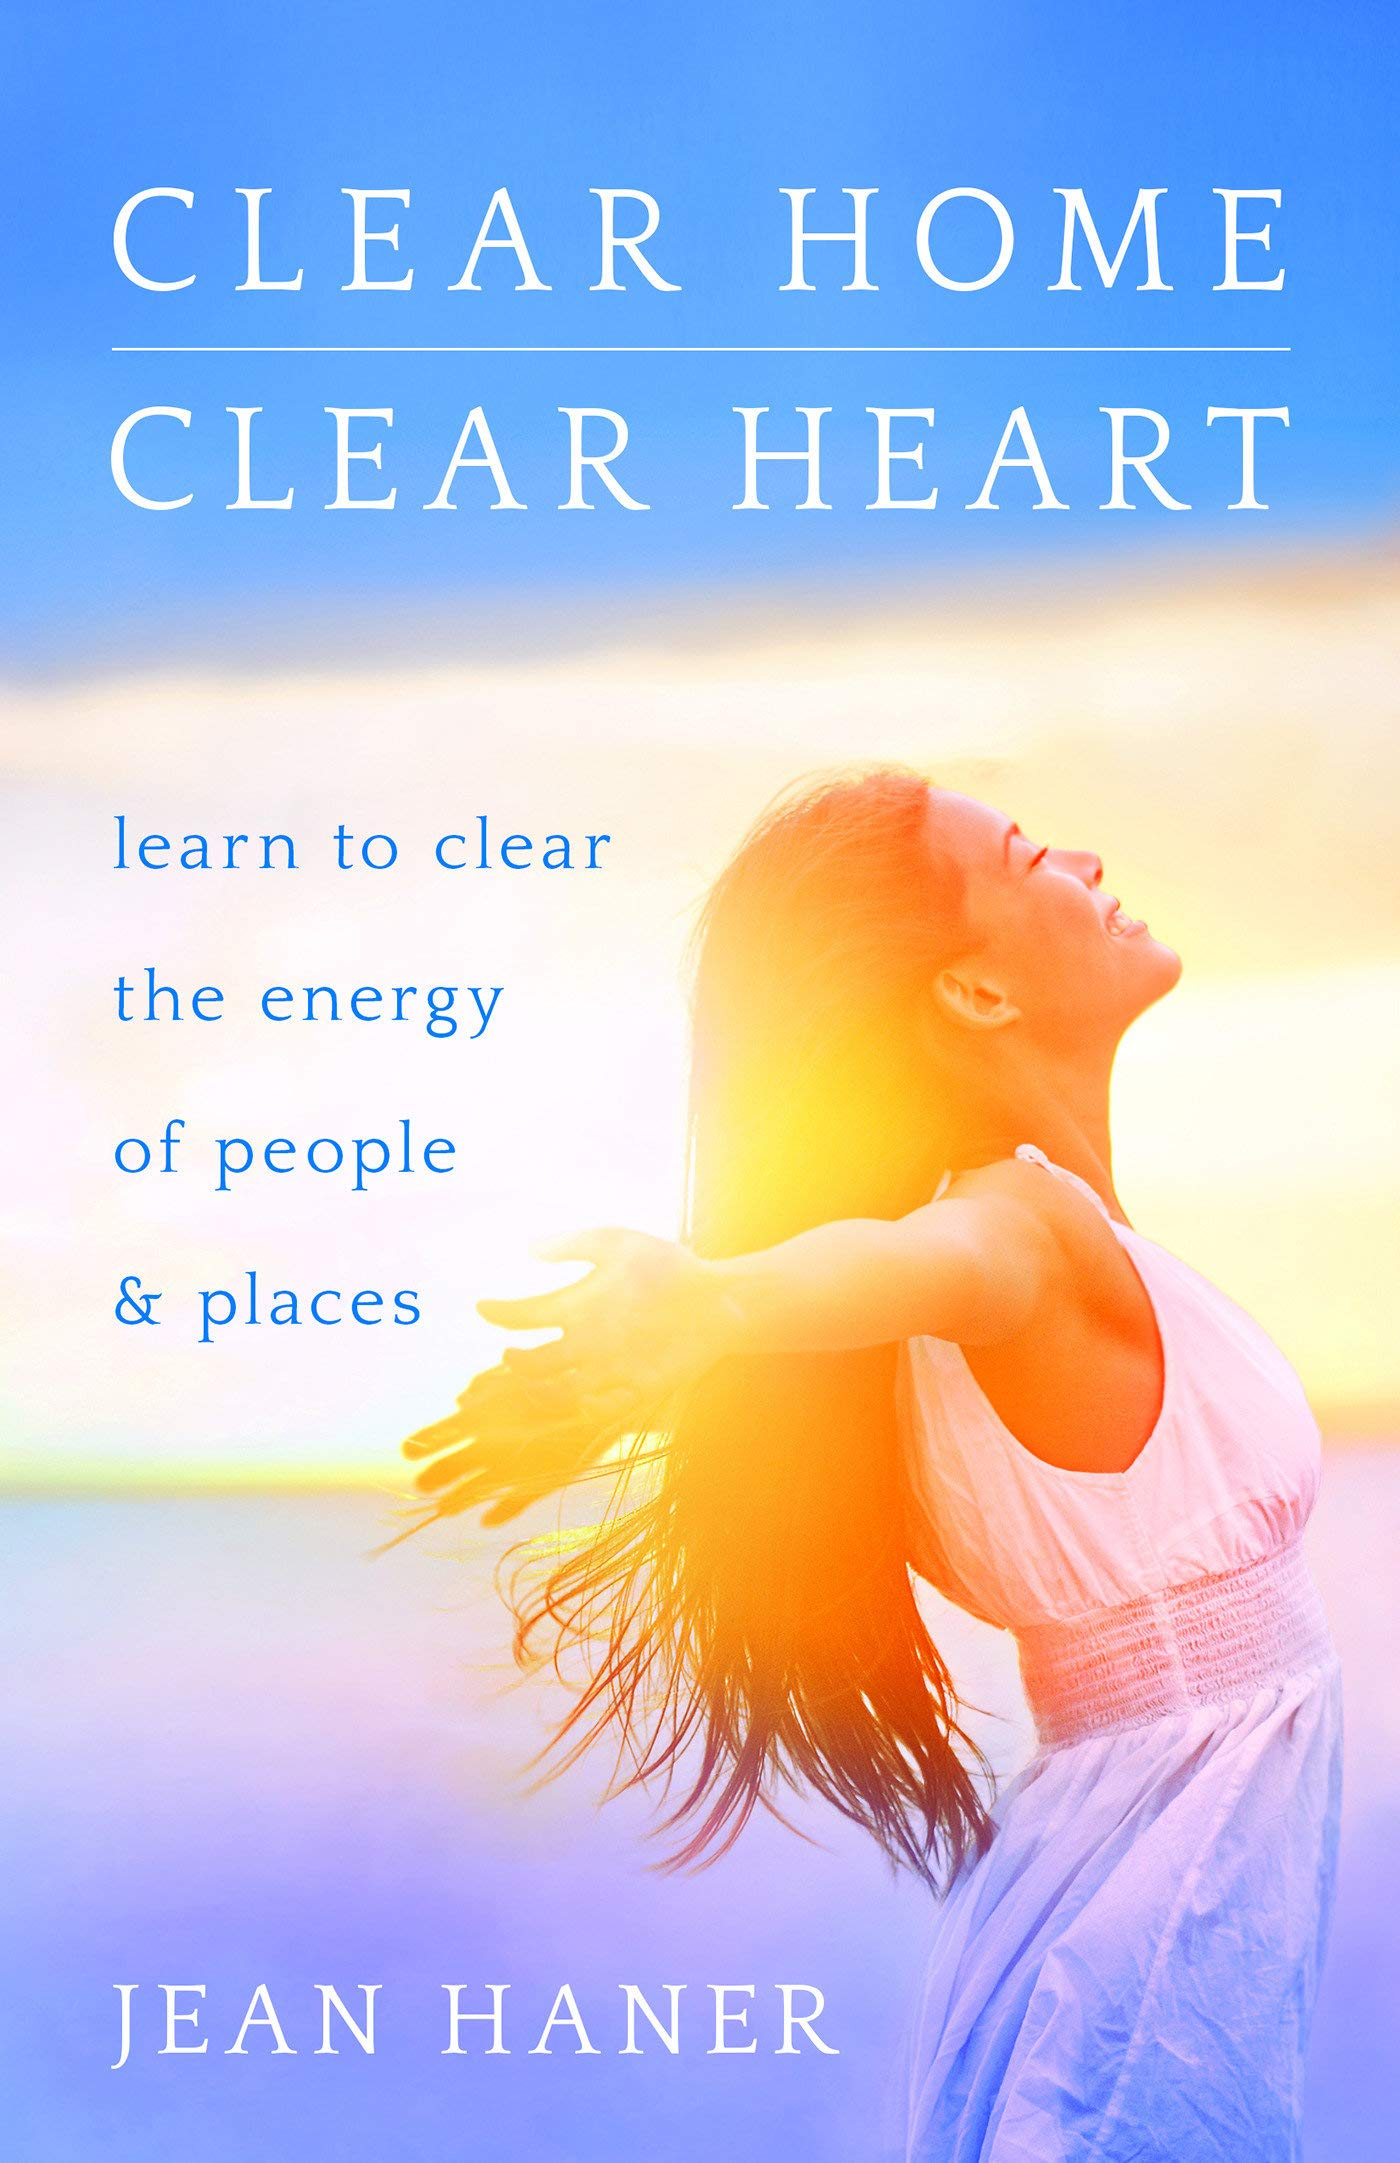 Clear Home, Clear Heart: Learn to Clear the Energy of People & Places